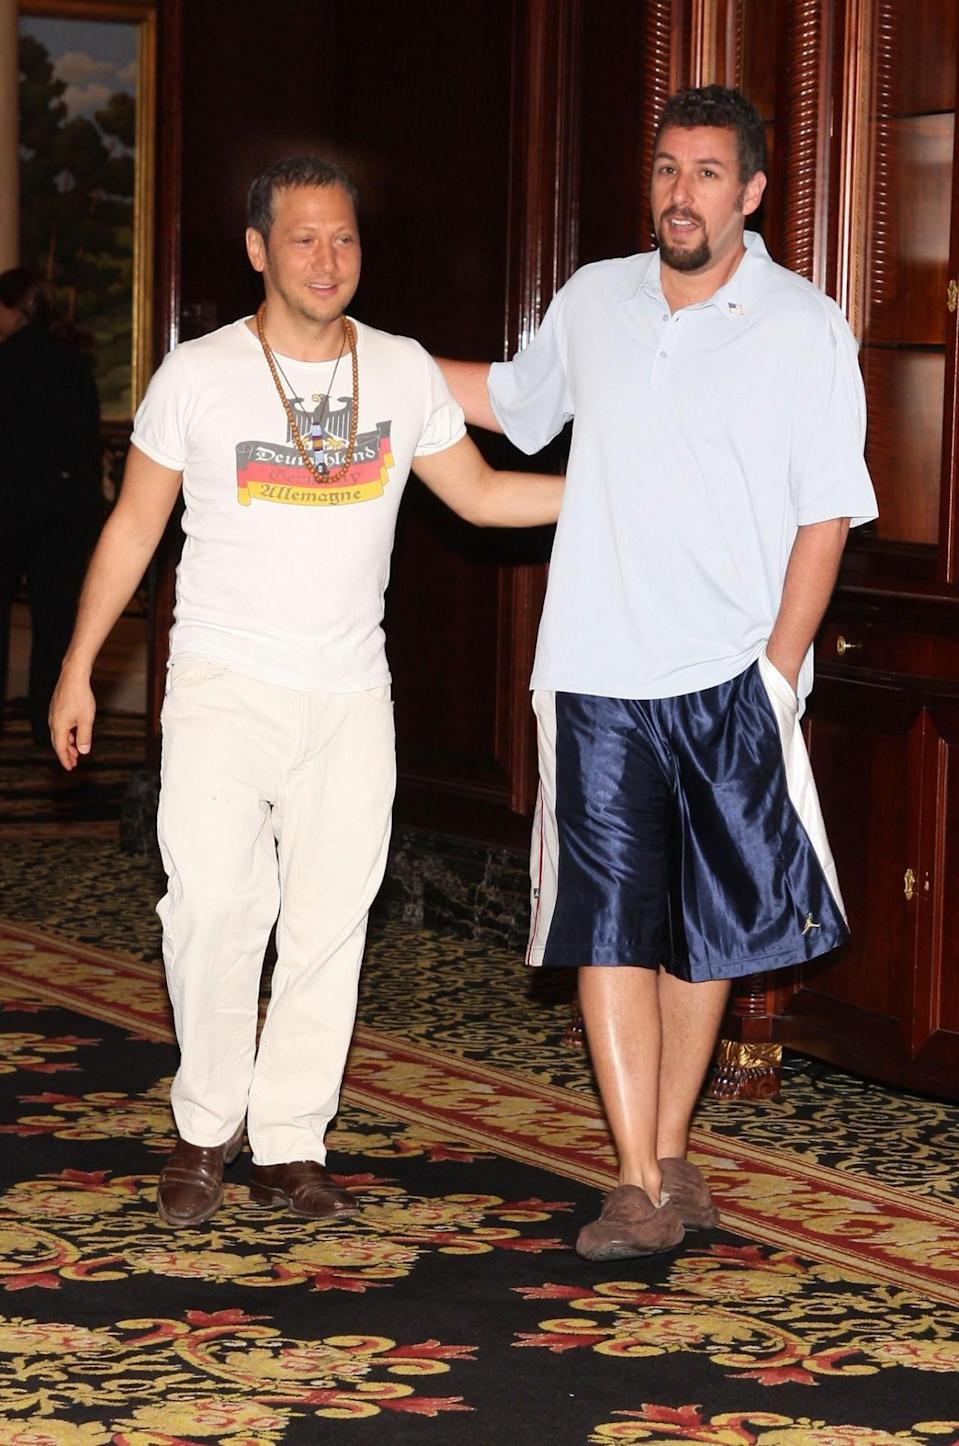 <p>Even when Sandler's abroad, he's all about being comfy. He was spotted with his longtime buddy Rob Schneider at the Berlin premiere of <i>You Don't Mess With the Zohan</i> in 2008, wearing his favorite slippers. (Photo: Anita Bugge/WireImage)</p>